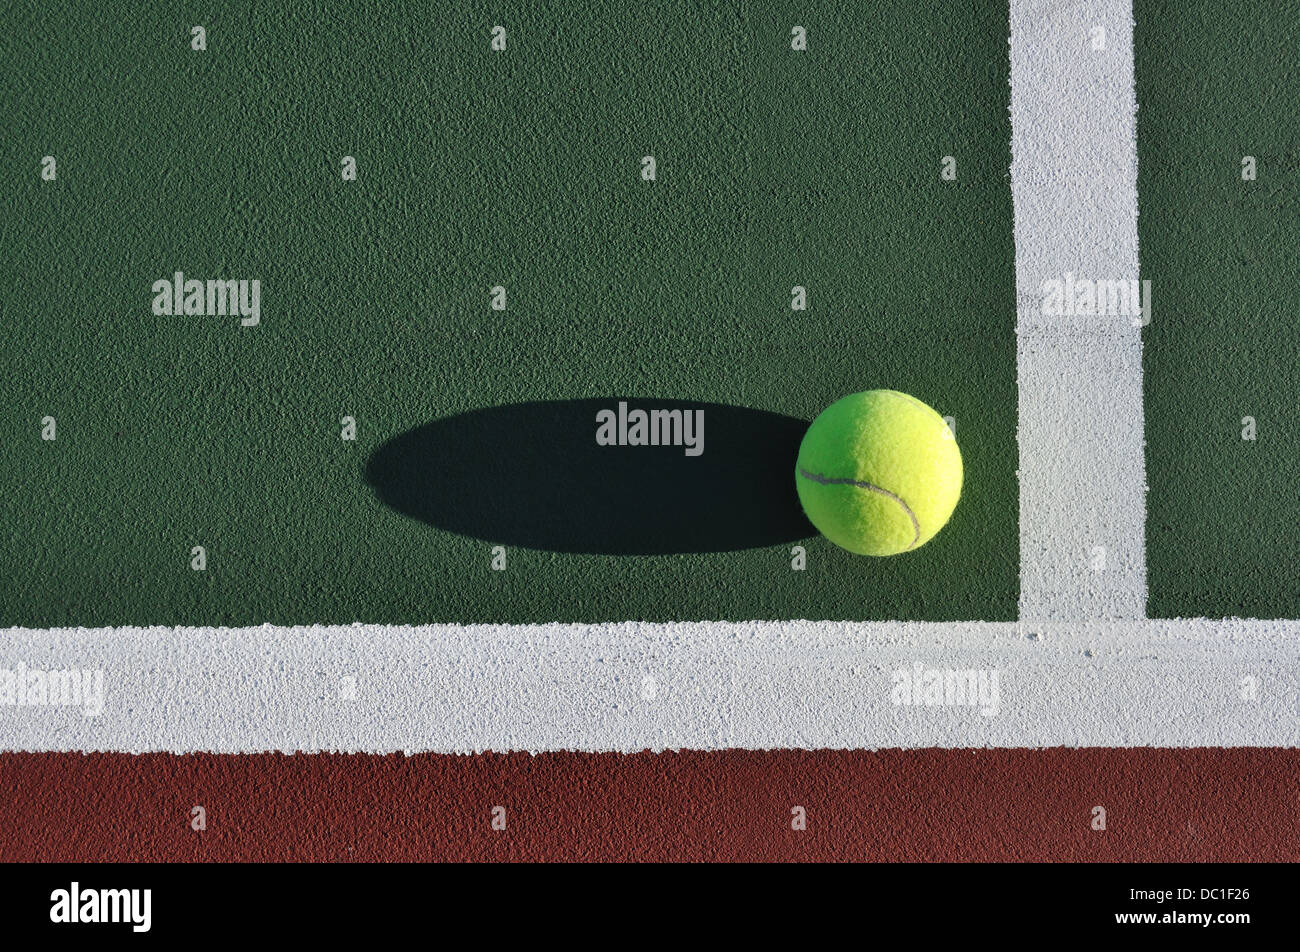 Tennis ball on a court - Stock Image